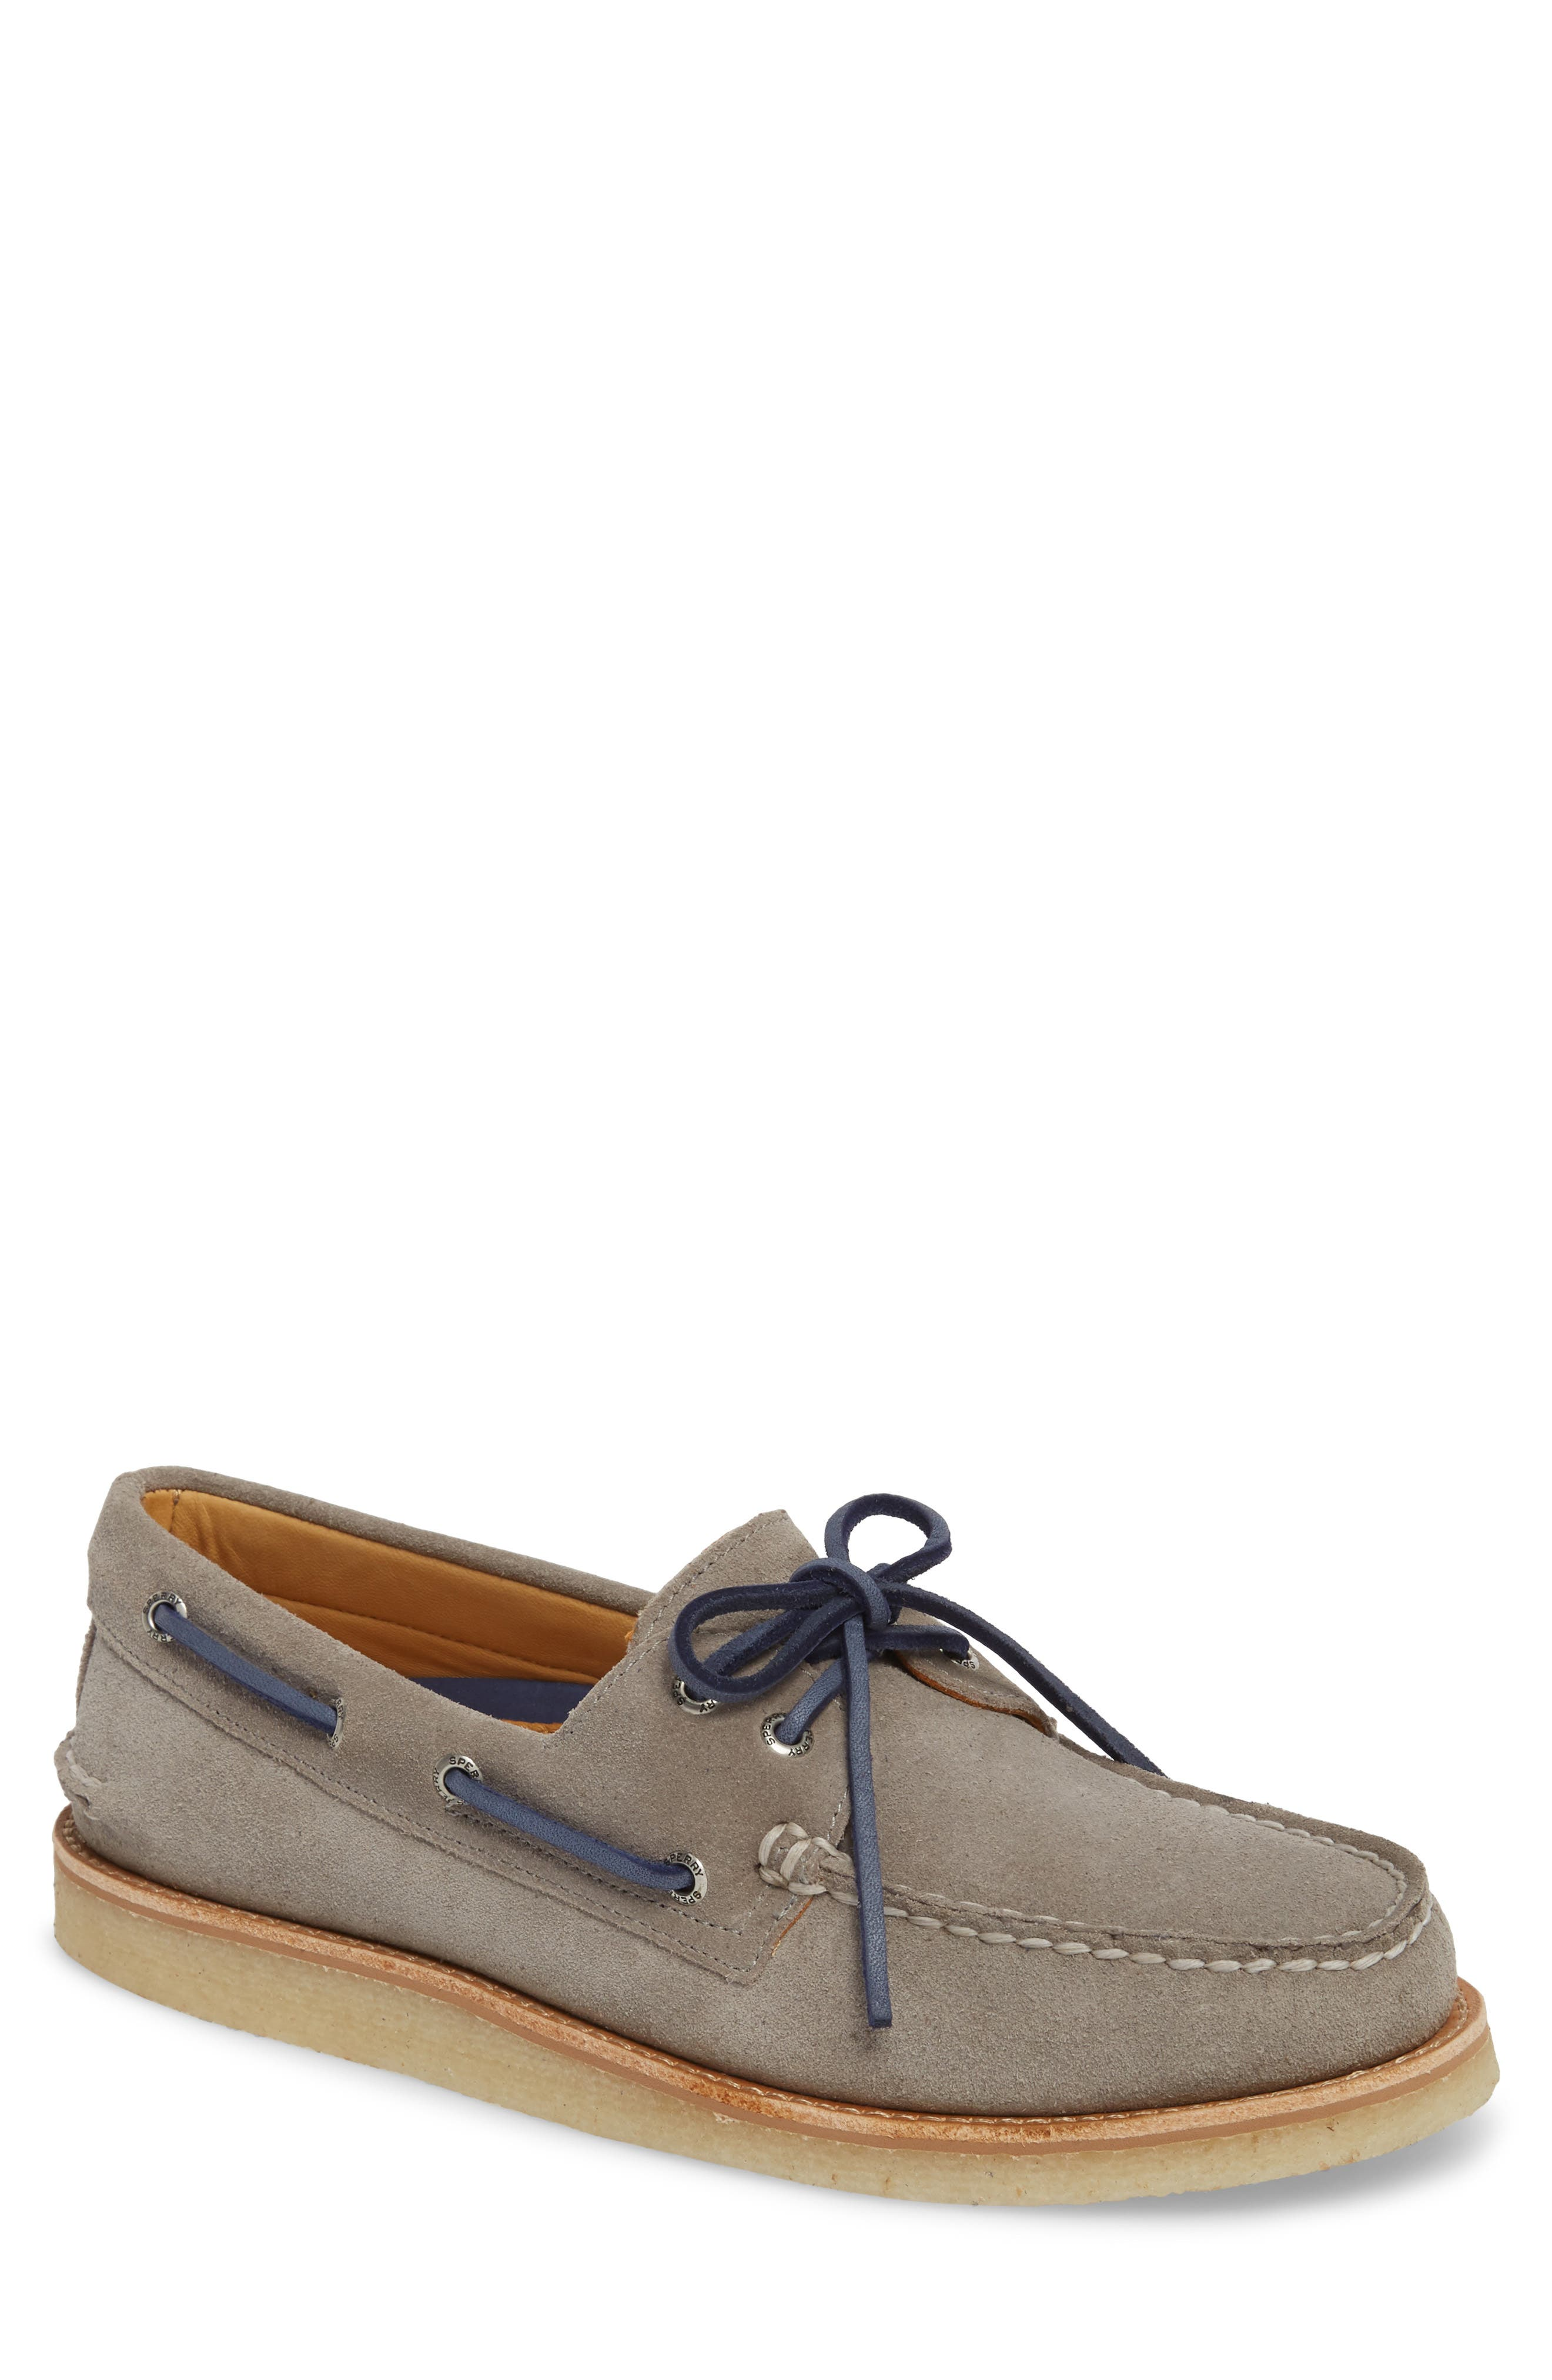 Gold Cup AO 2-Eye Boat Shoe,                             Main thumbnail 1, color,                             Grey Leather